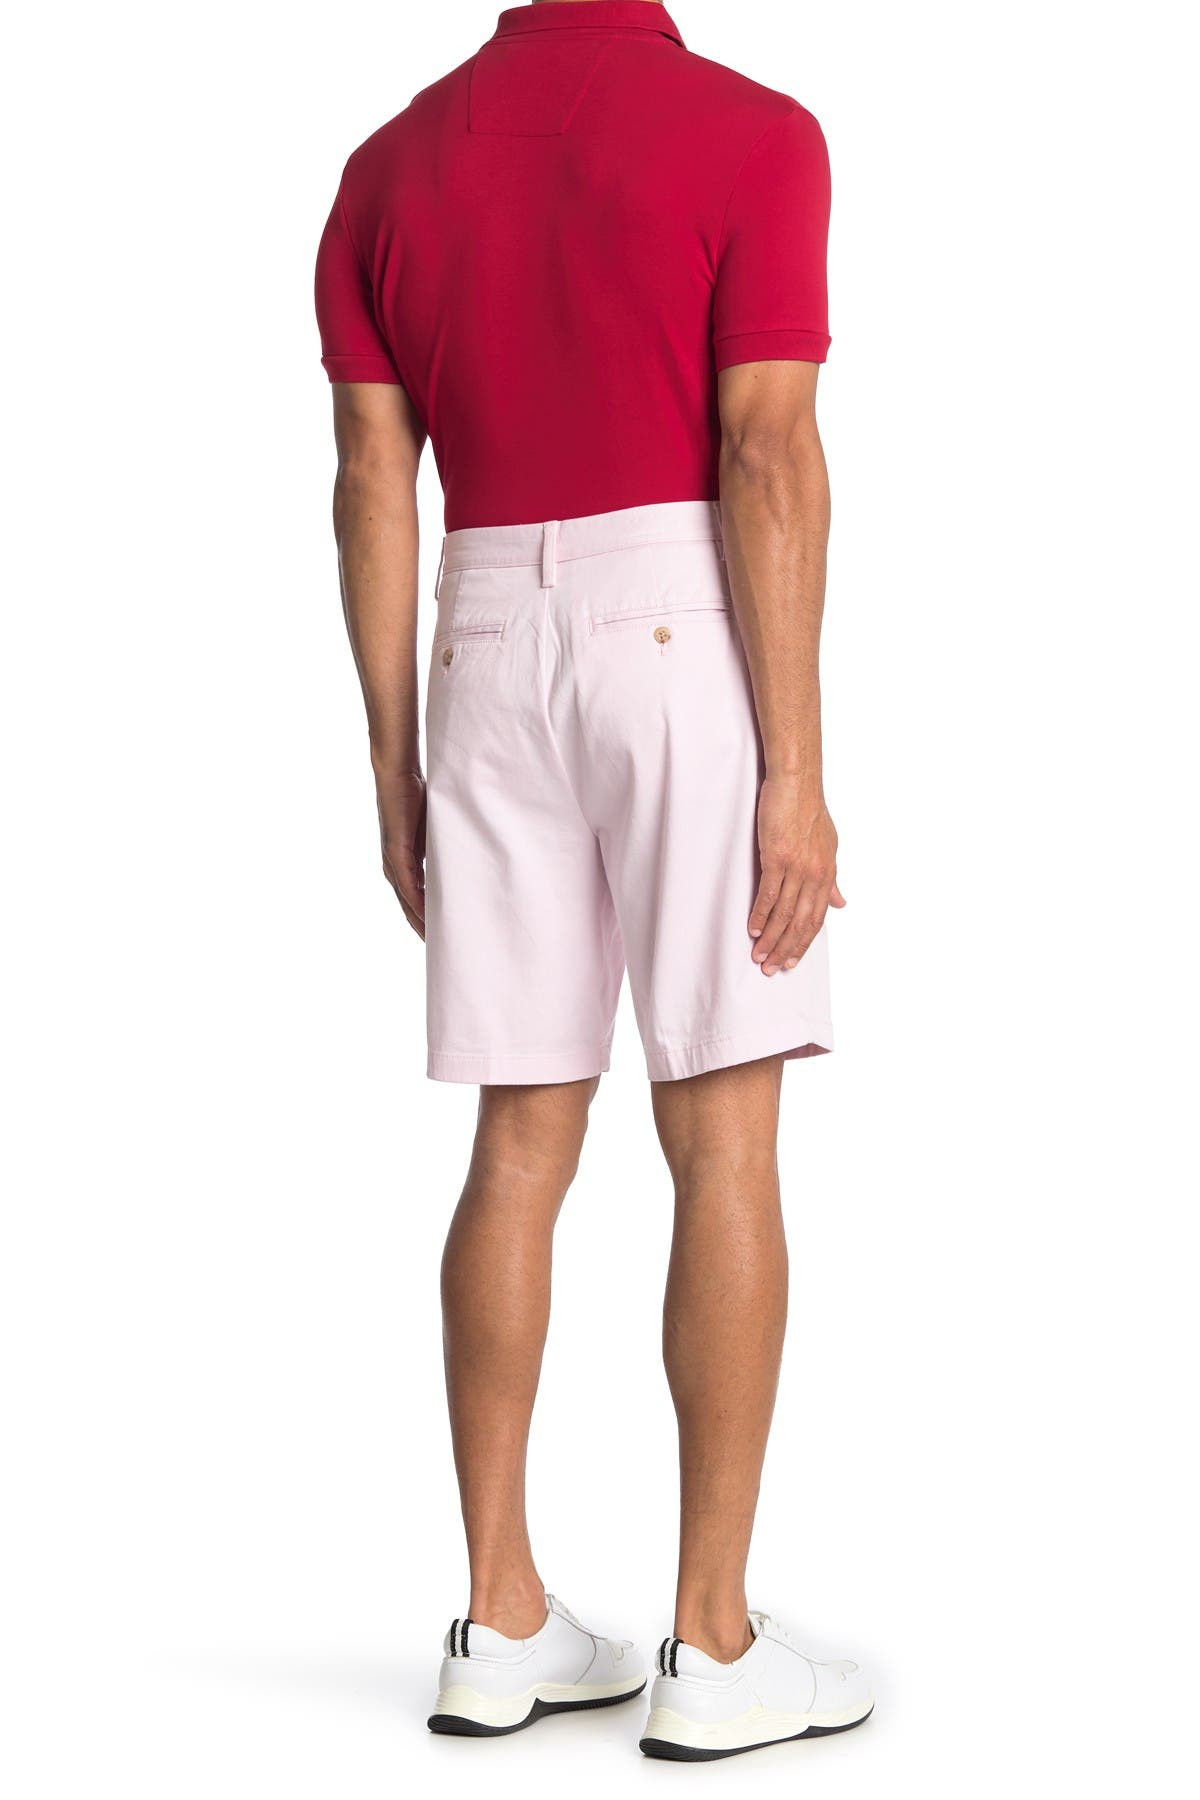 Image of Nautica Flat Front Stretch Deck Shorts